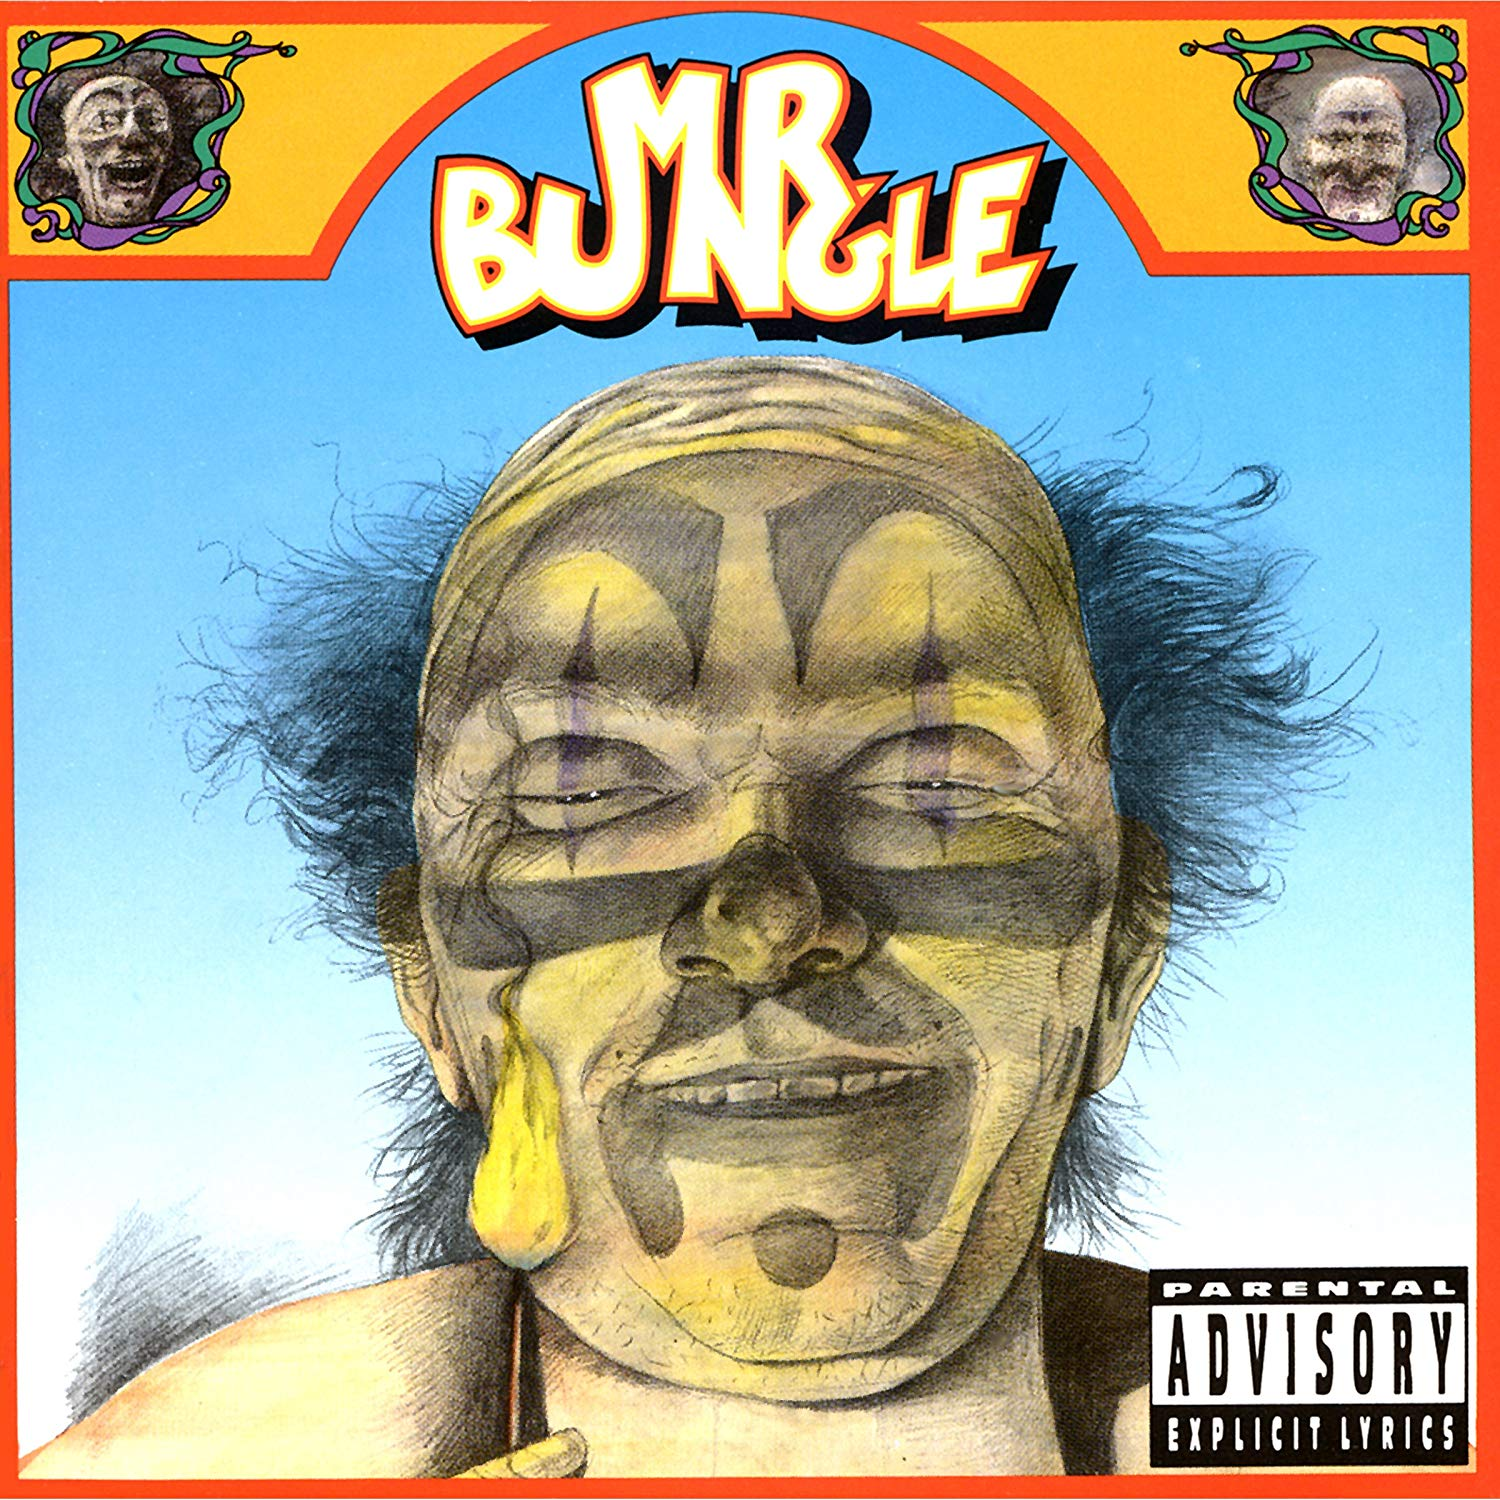 Mr. Bungle Set To Play Three Shows In 2020